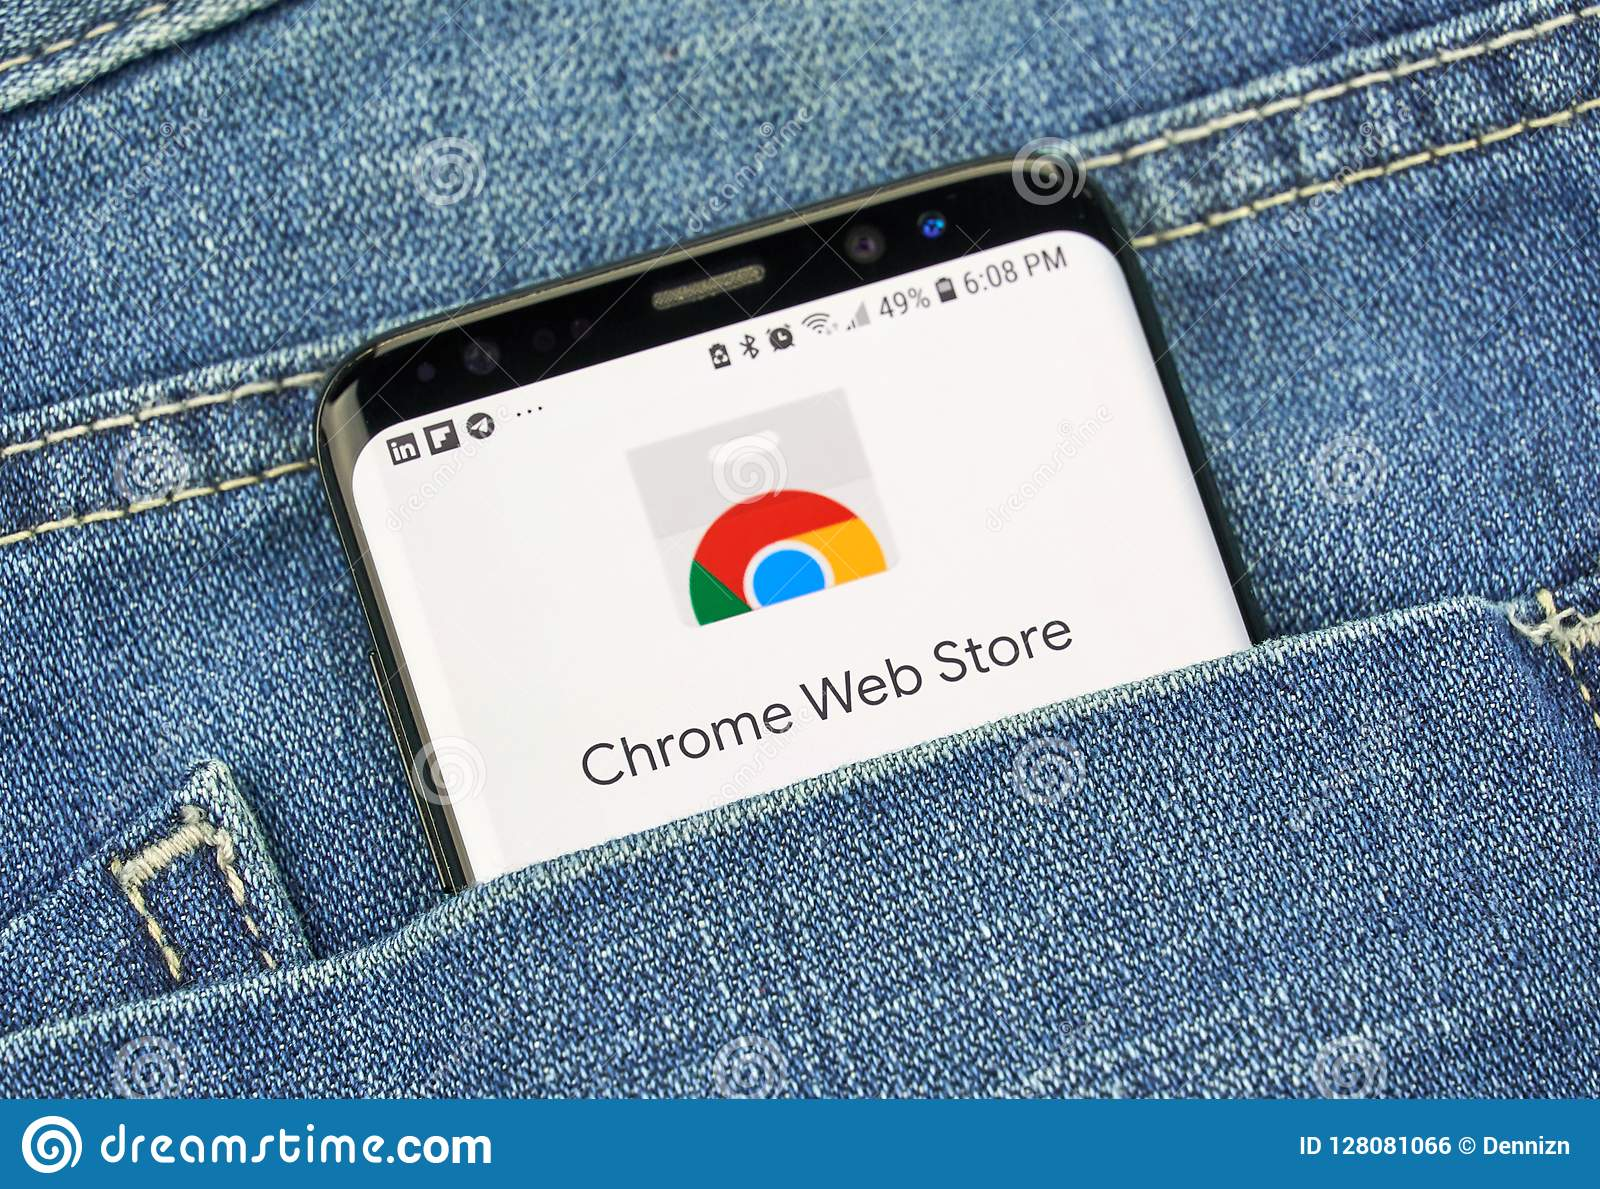 Chrome Web Store On A Phone Screen In A Pocket Editorial